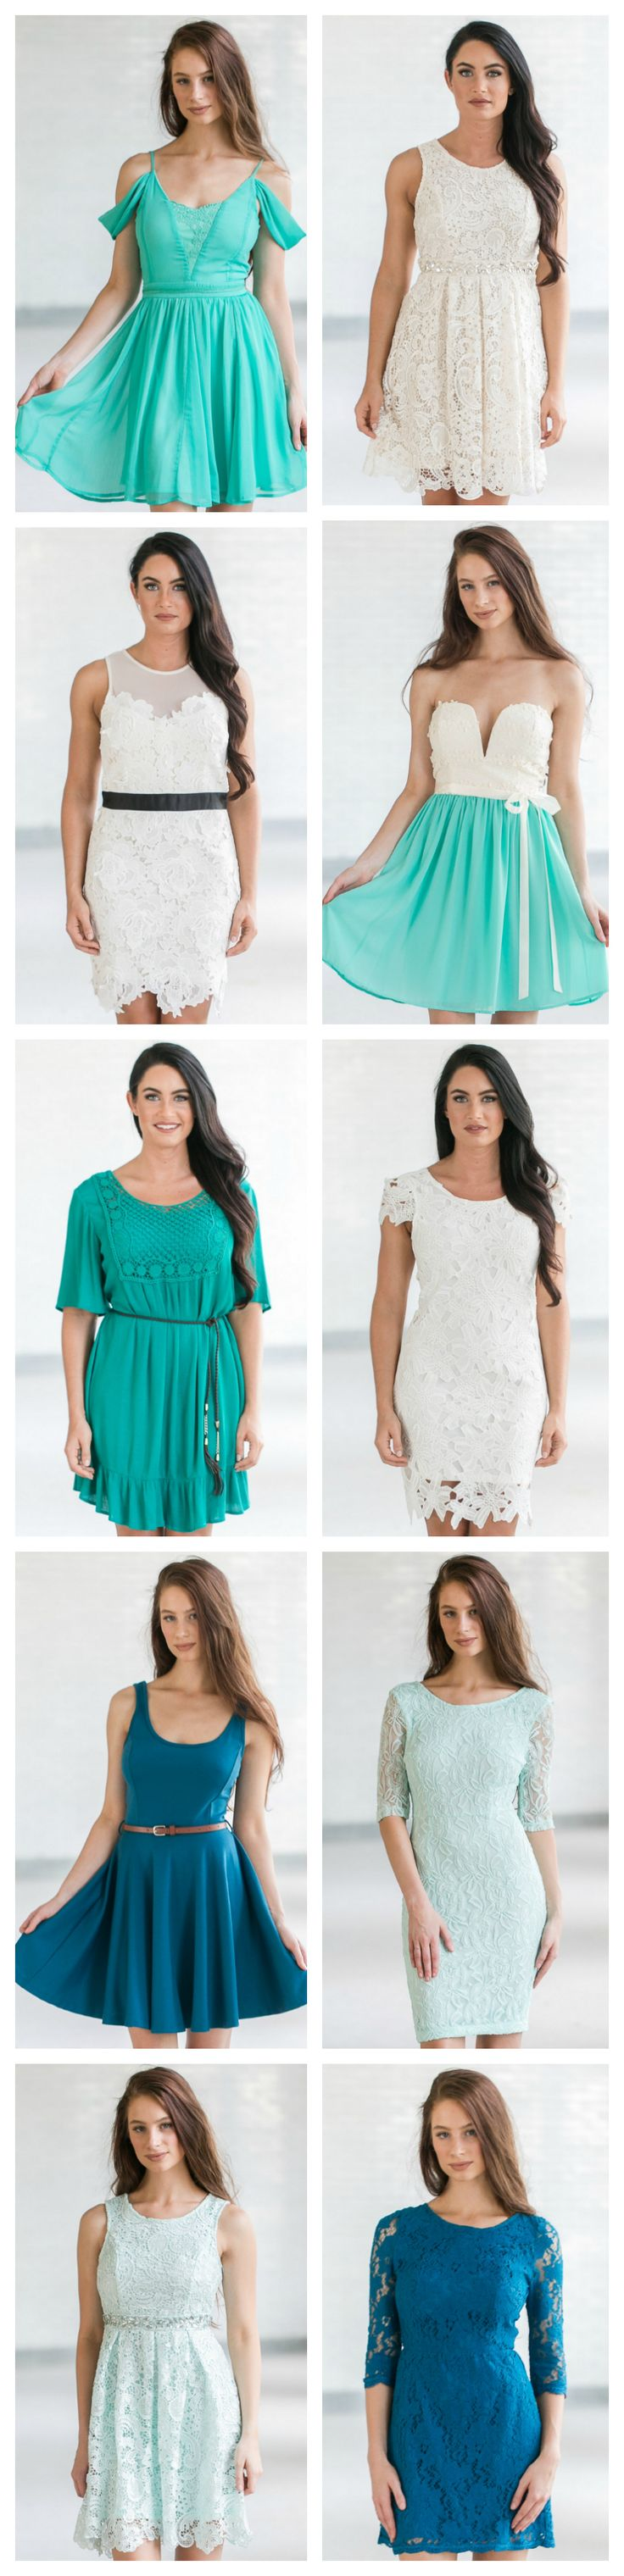 Beautiful mint green dresses at www.lilyboutique.com! FREE shipping over $75!